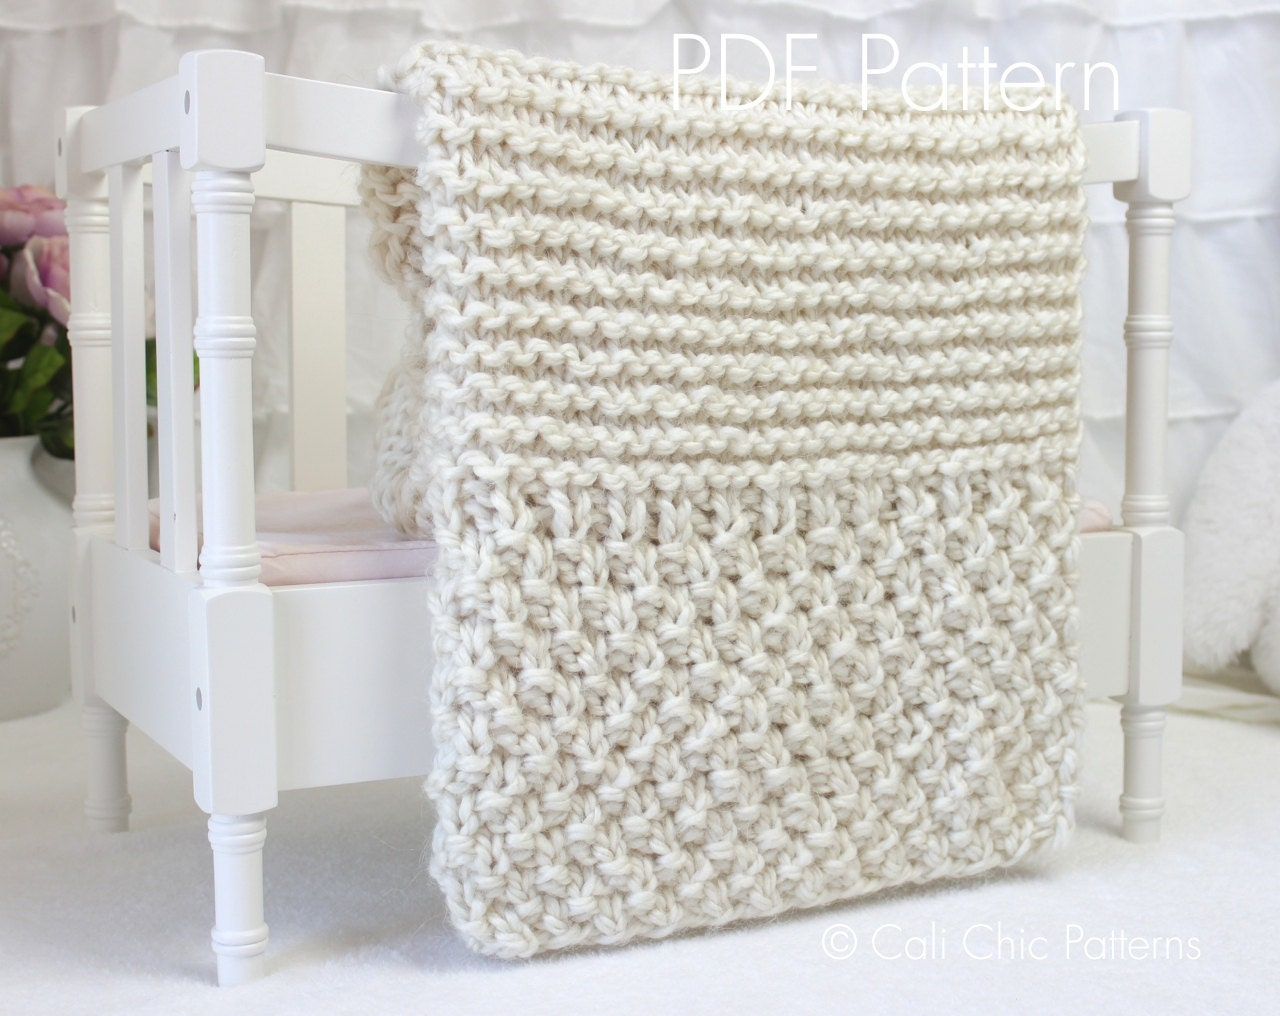 Easy Knitting Patterns For Baby Blankets For Beginners : Beginner knitting pattern buttercream baby afghan